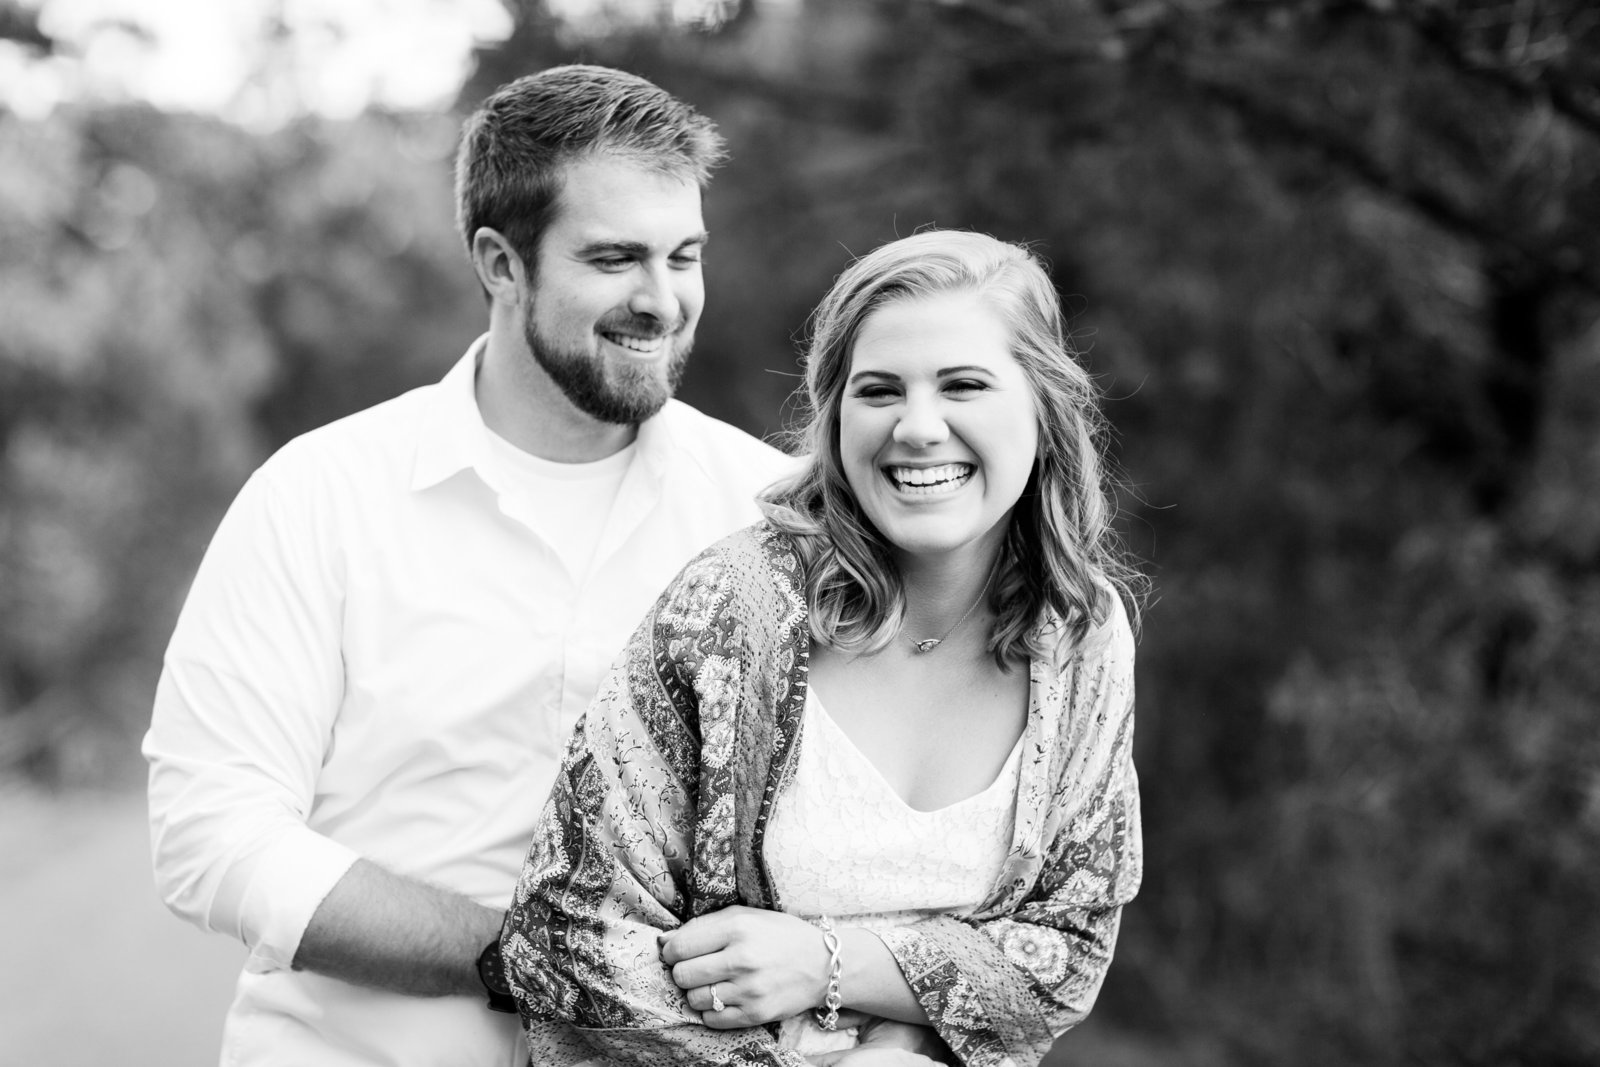 eisenhower-park-san-antonio-tx-engagement-session-photo-58